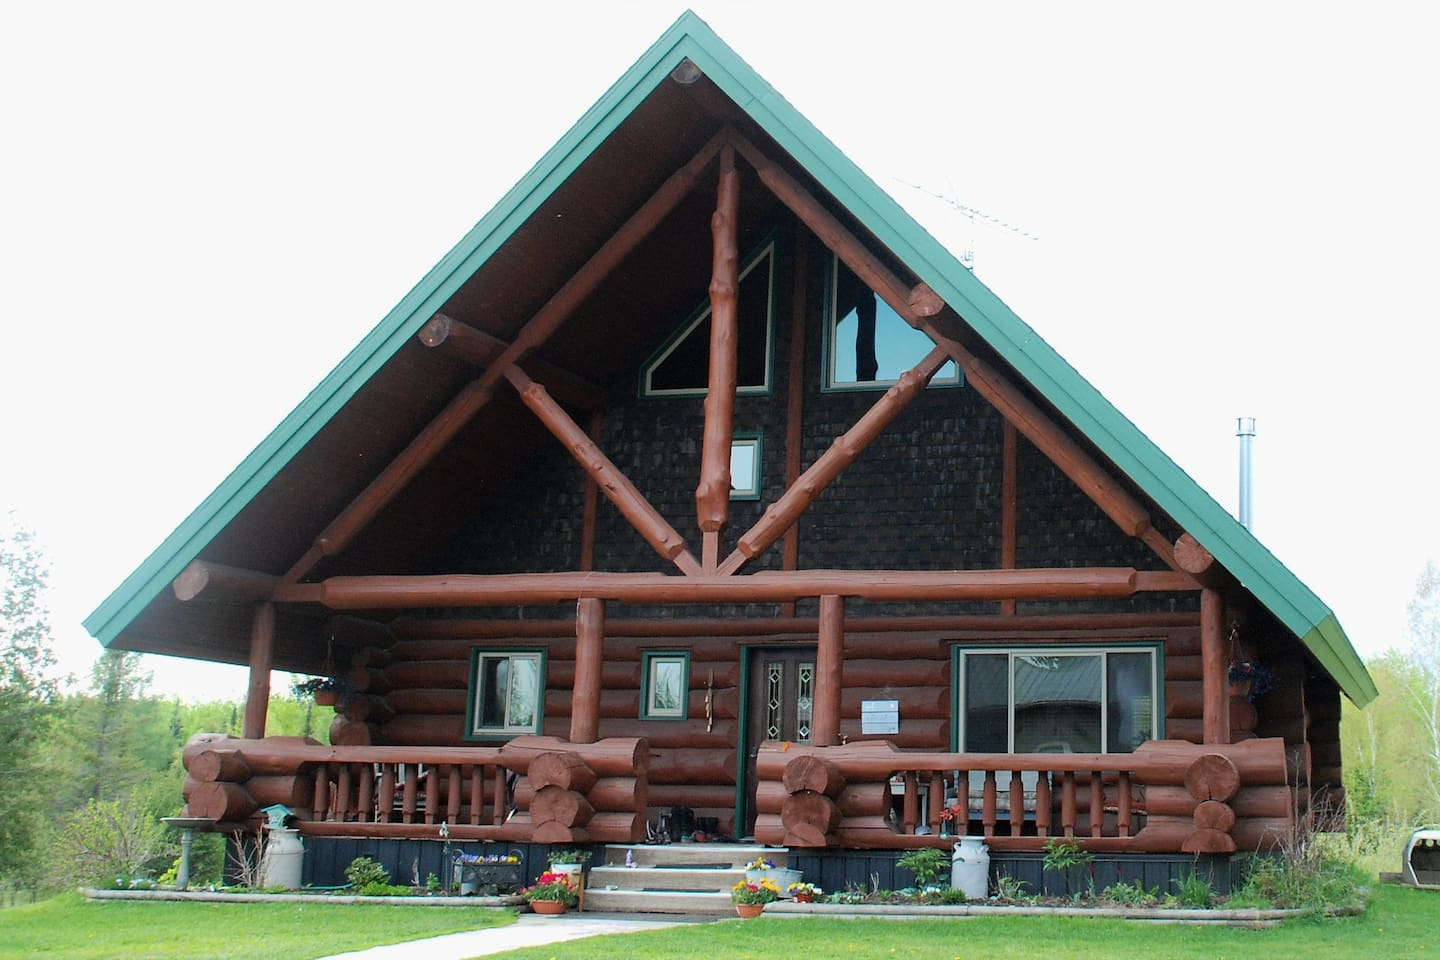 The main house is a beautiful custom log home built in 2005. The shared bathrooms and kitchen are located inside just a short walk from the guest space.